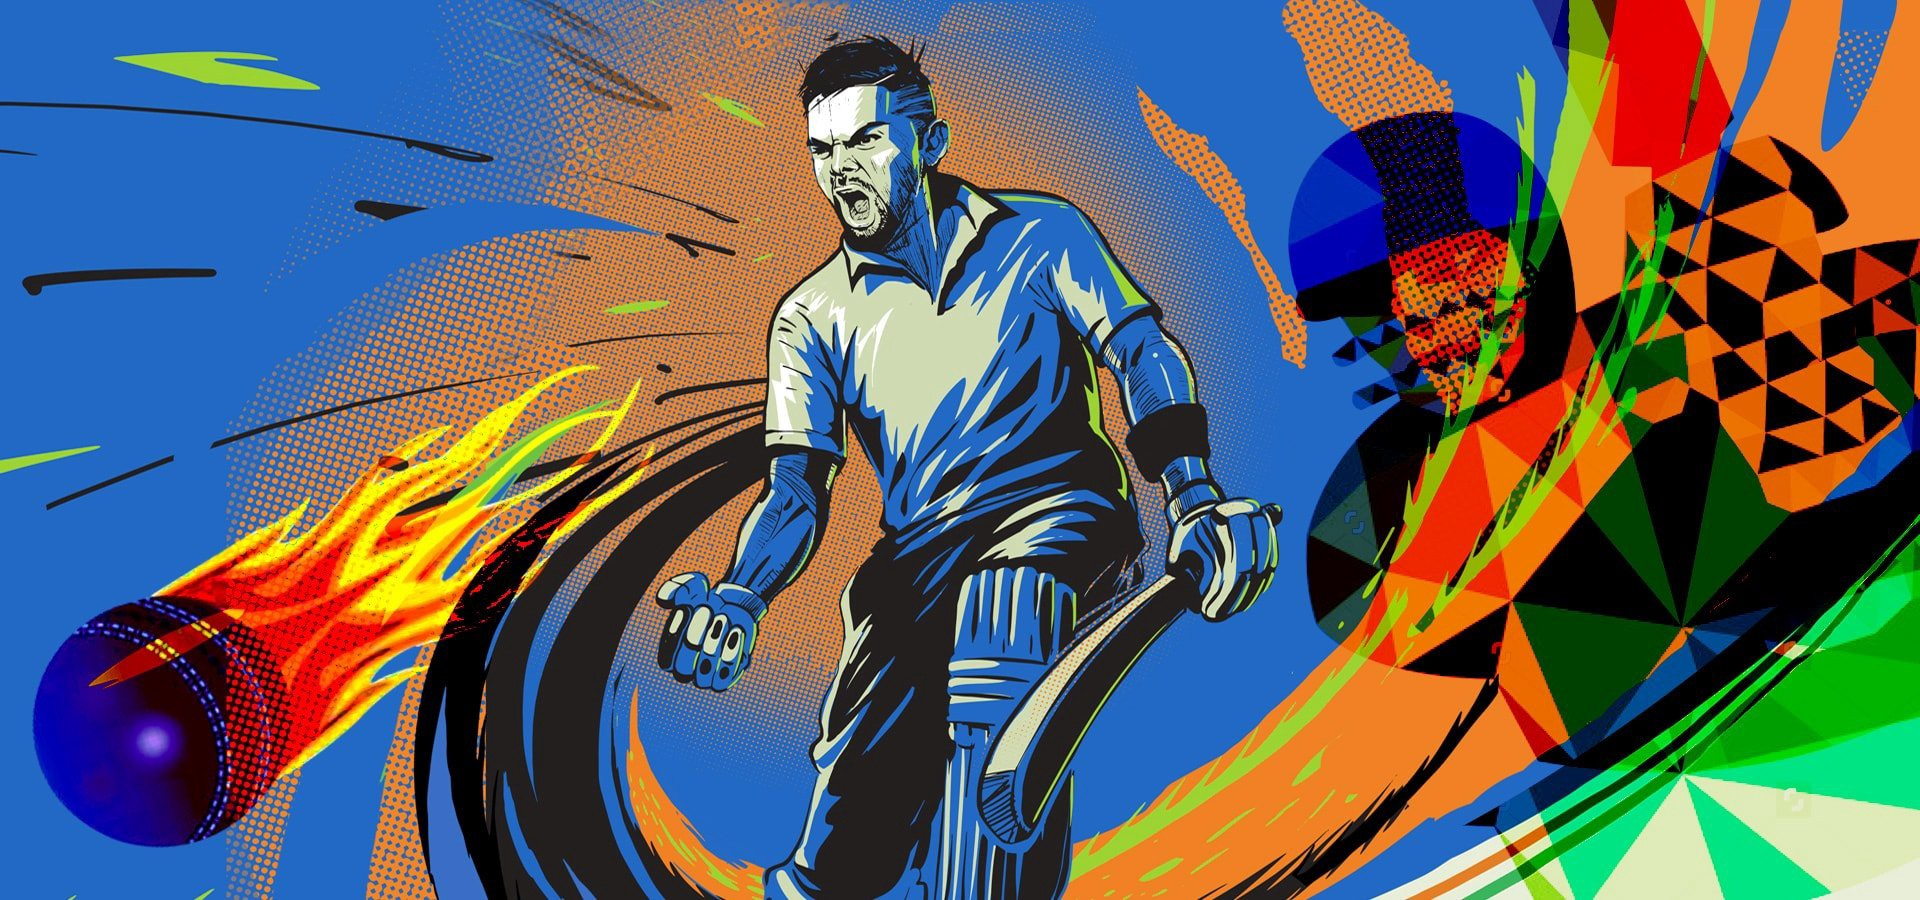 How To Develop Fantasy Cricket Mobile App With Great Features